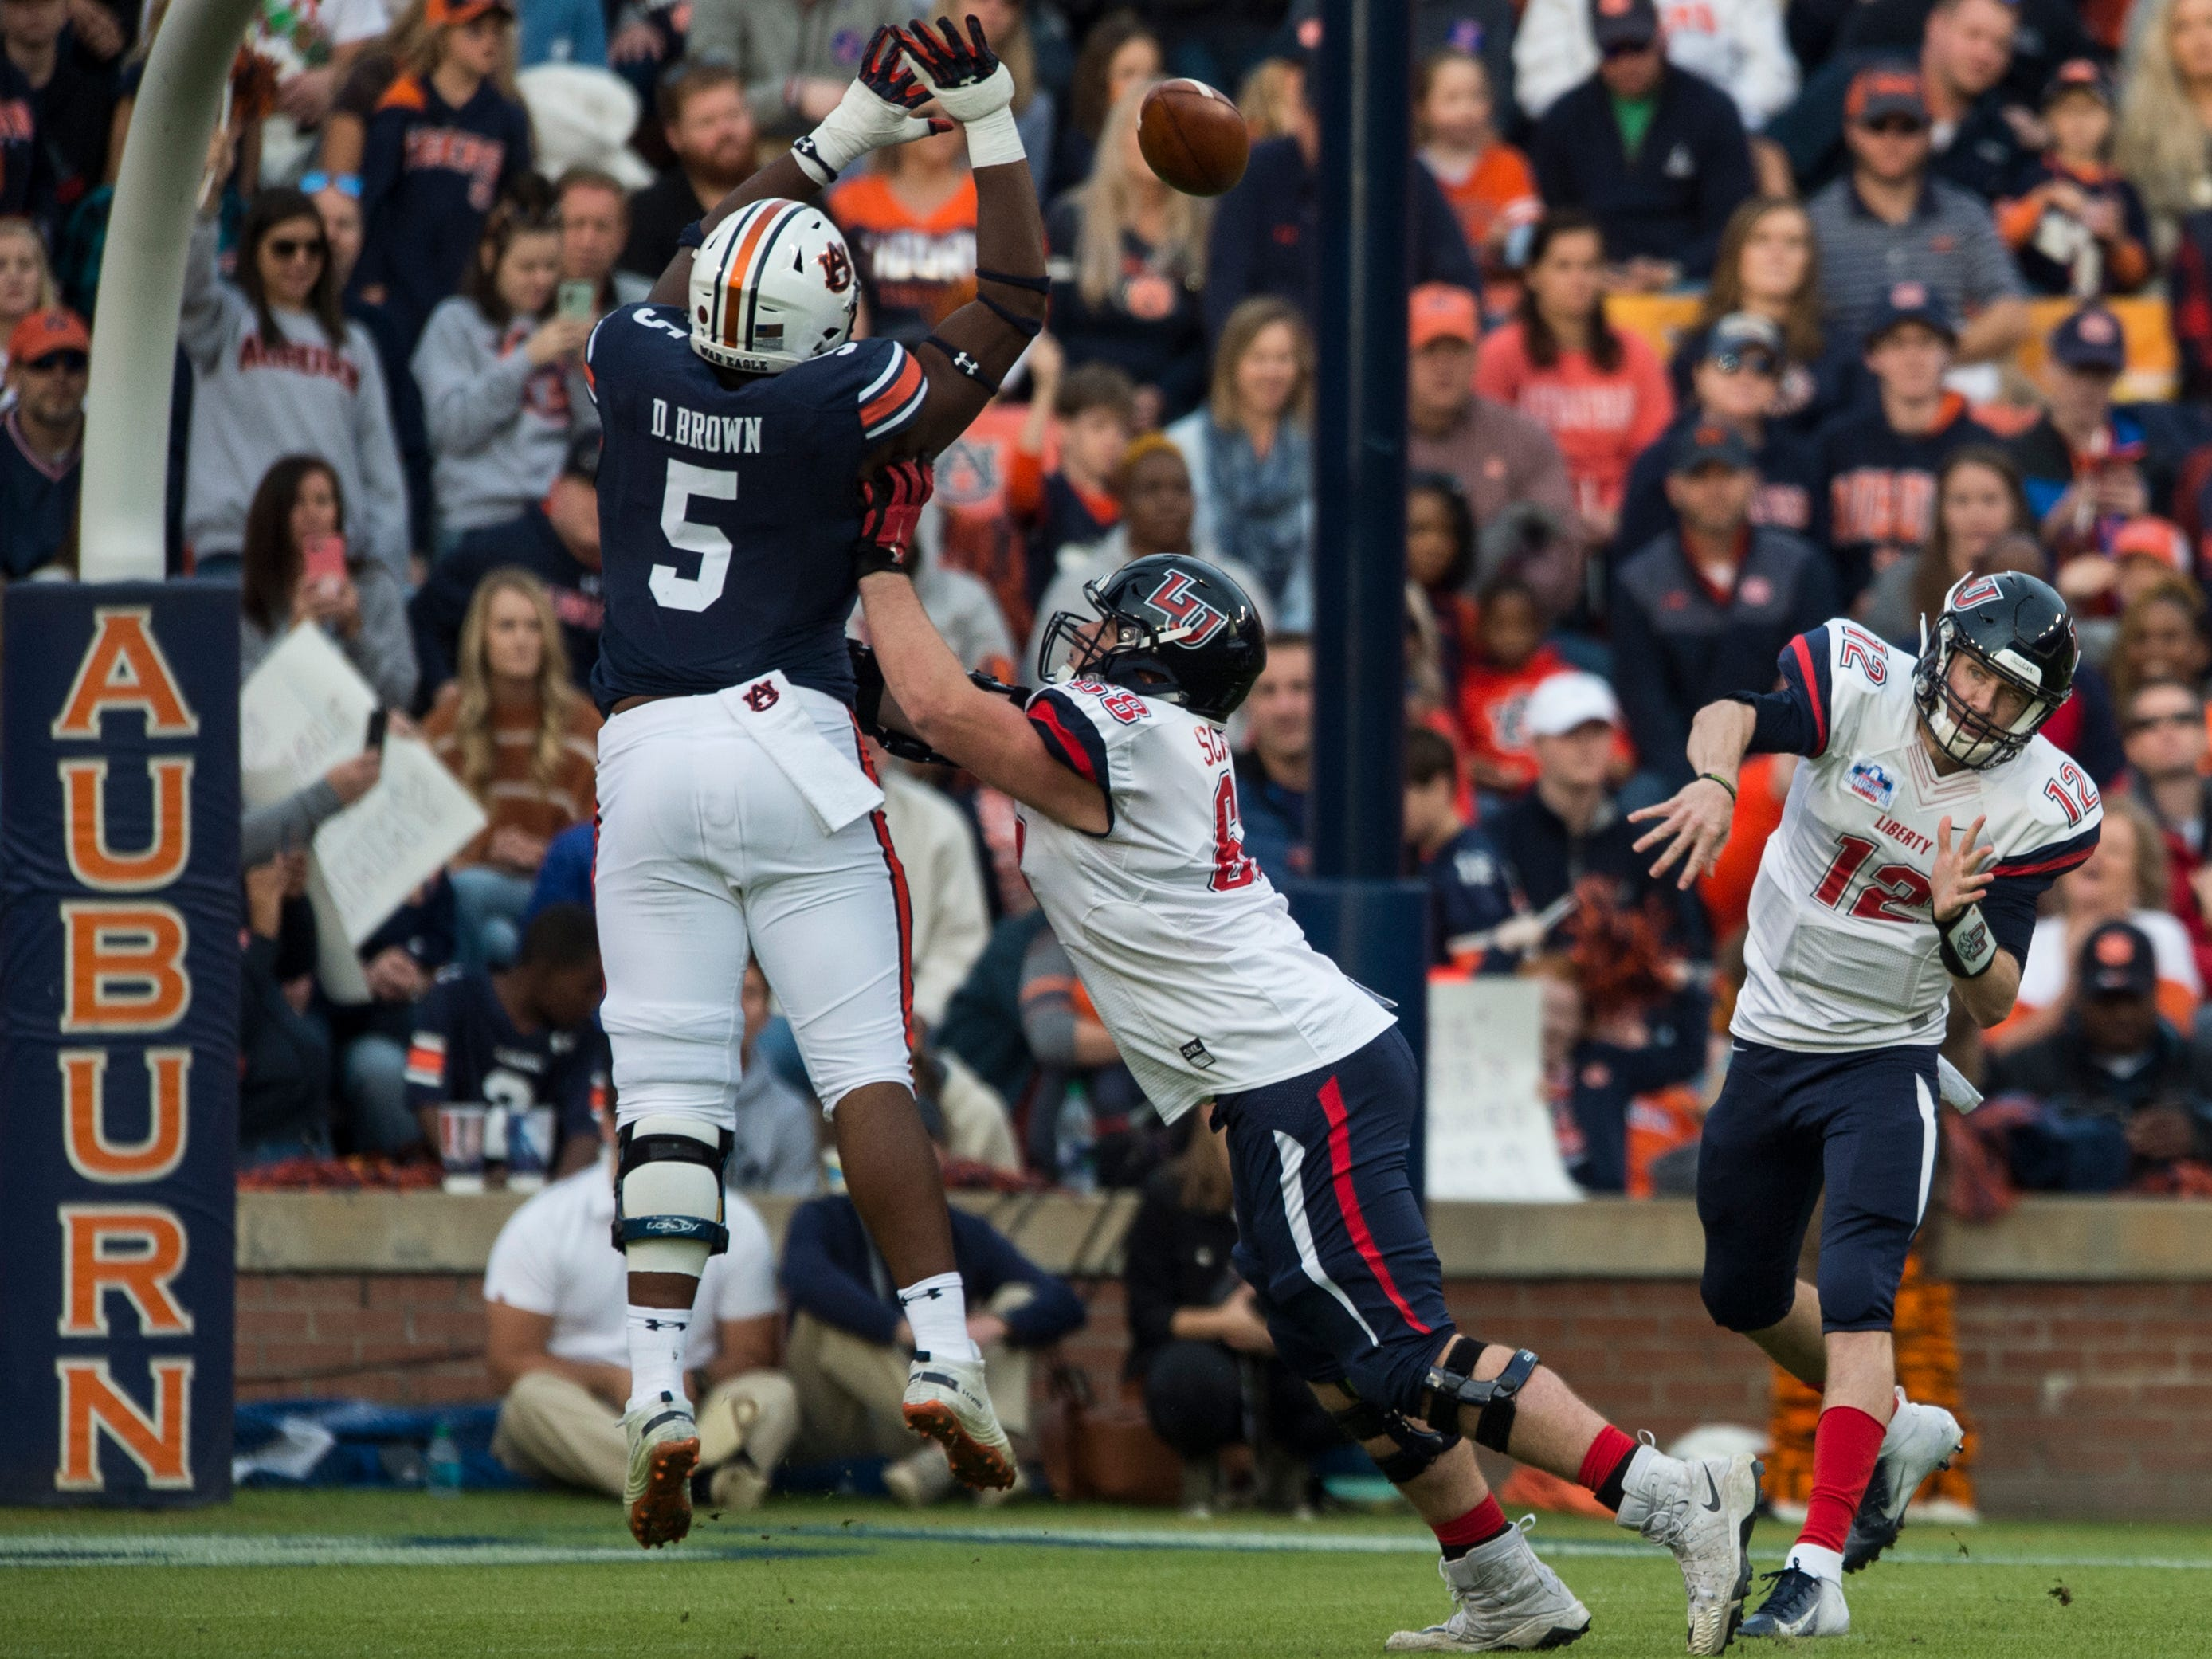 Auburn defensive lineman Derrick Brown (5) knocks down Liberty quarterback Stephen Calvert (12) pass at Jordan-Hare Stadium in Auburn, Ala., on Saturday, Nov.. 17, 2018. Auburn leads Liberty 32-0 at halftime.